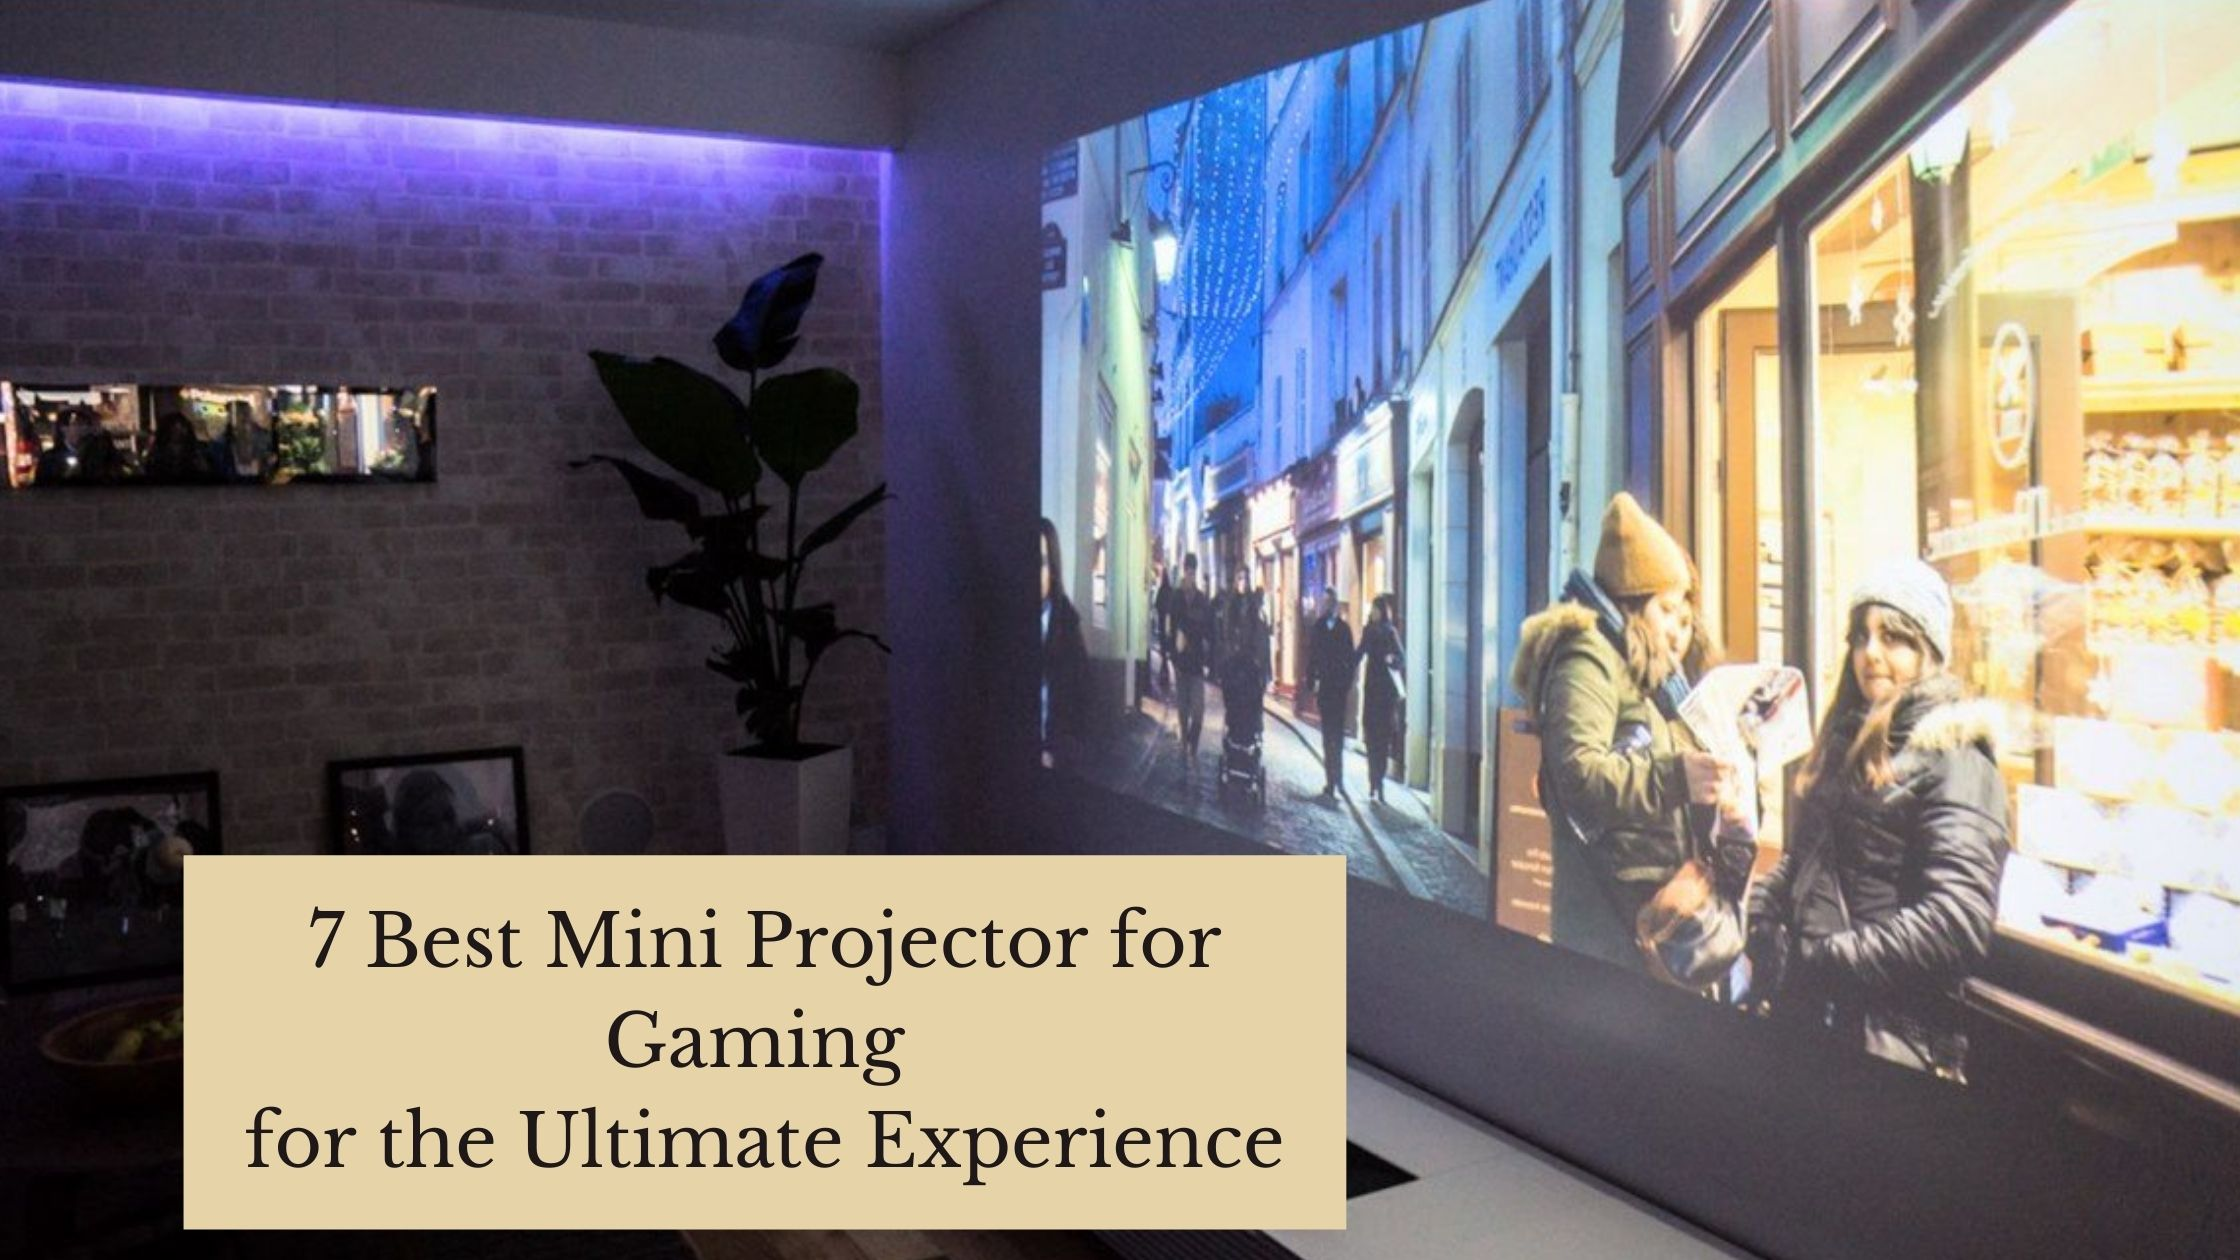 7 Best Mini Projectors for Gaming for the Ultimate Experience